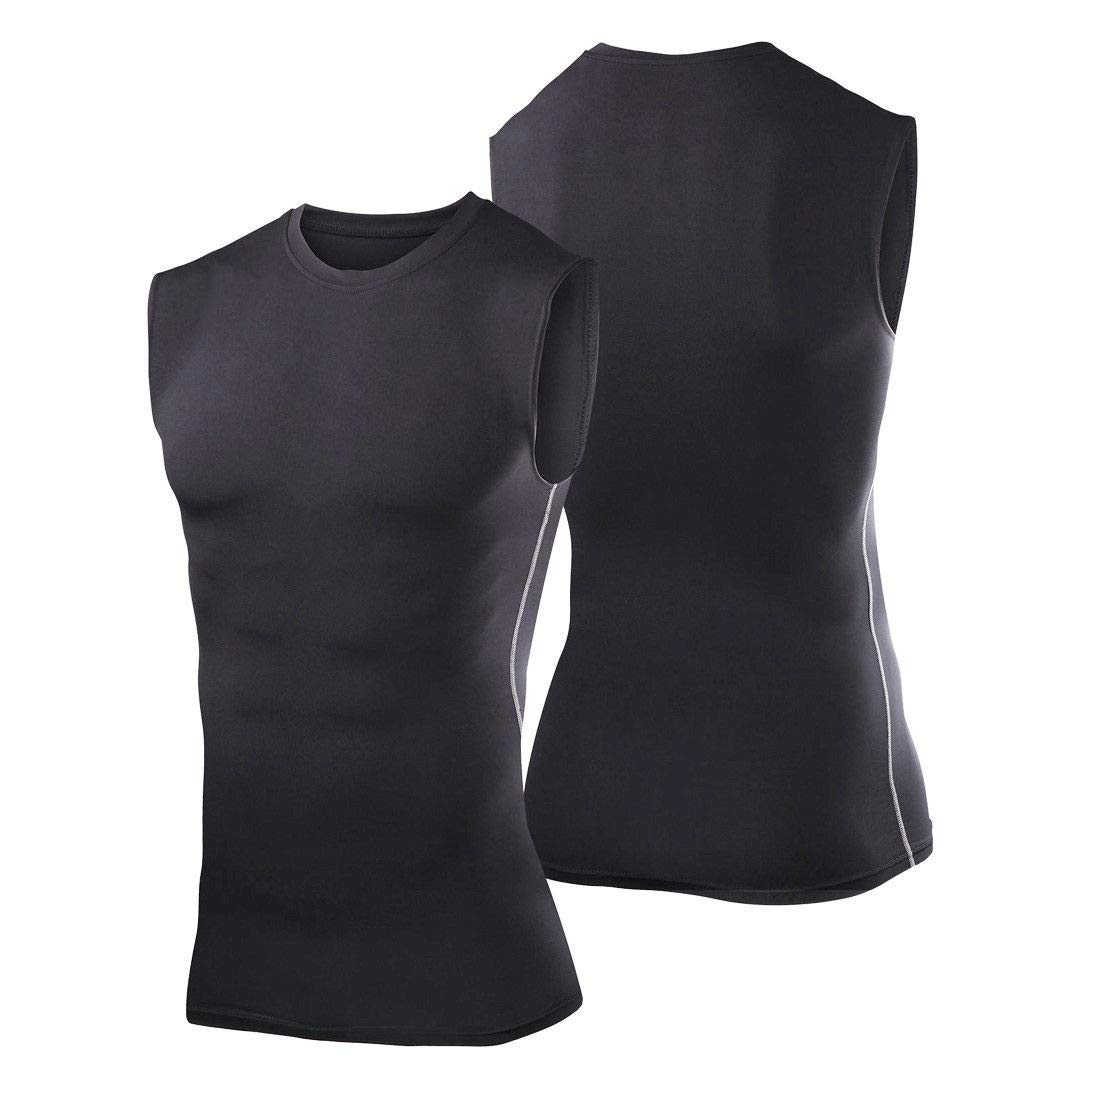 Mens Black Sleeveless Compression Shirt Base Layer Tights #HLFN XL-XXL Peppermint Store